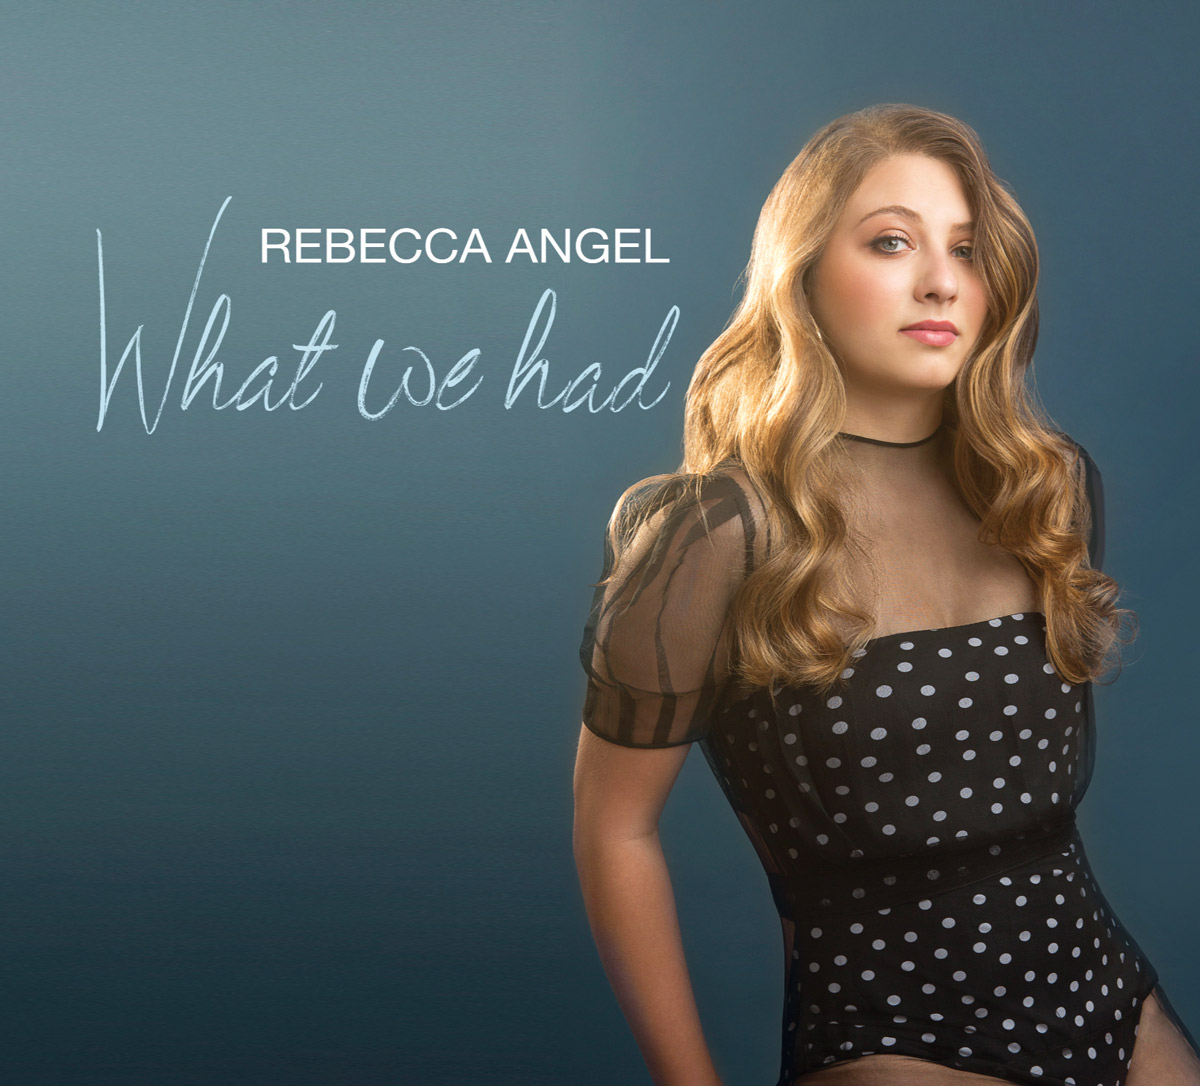 Rebecca Angel's new EPK: What we Had